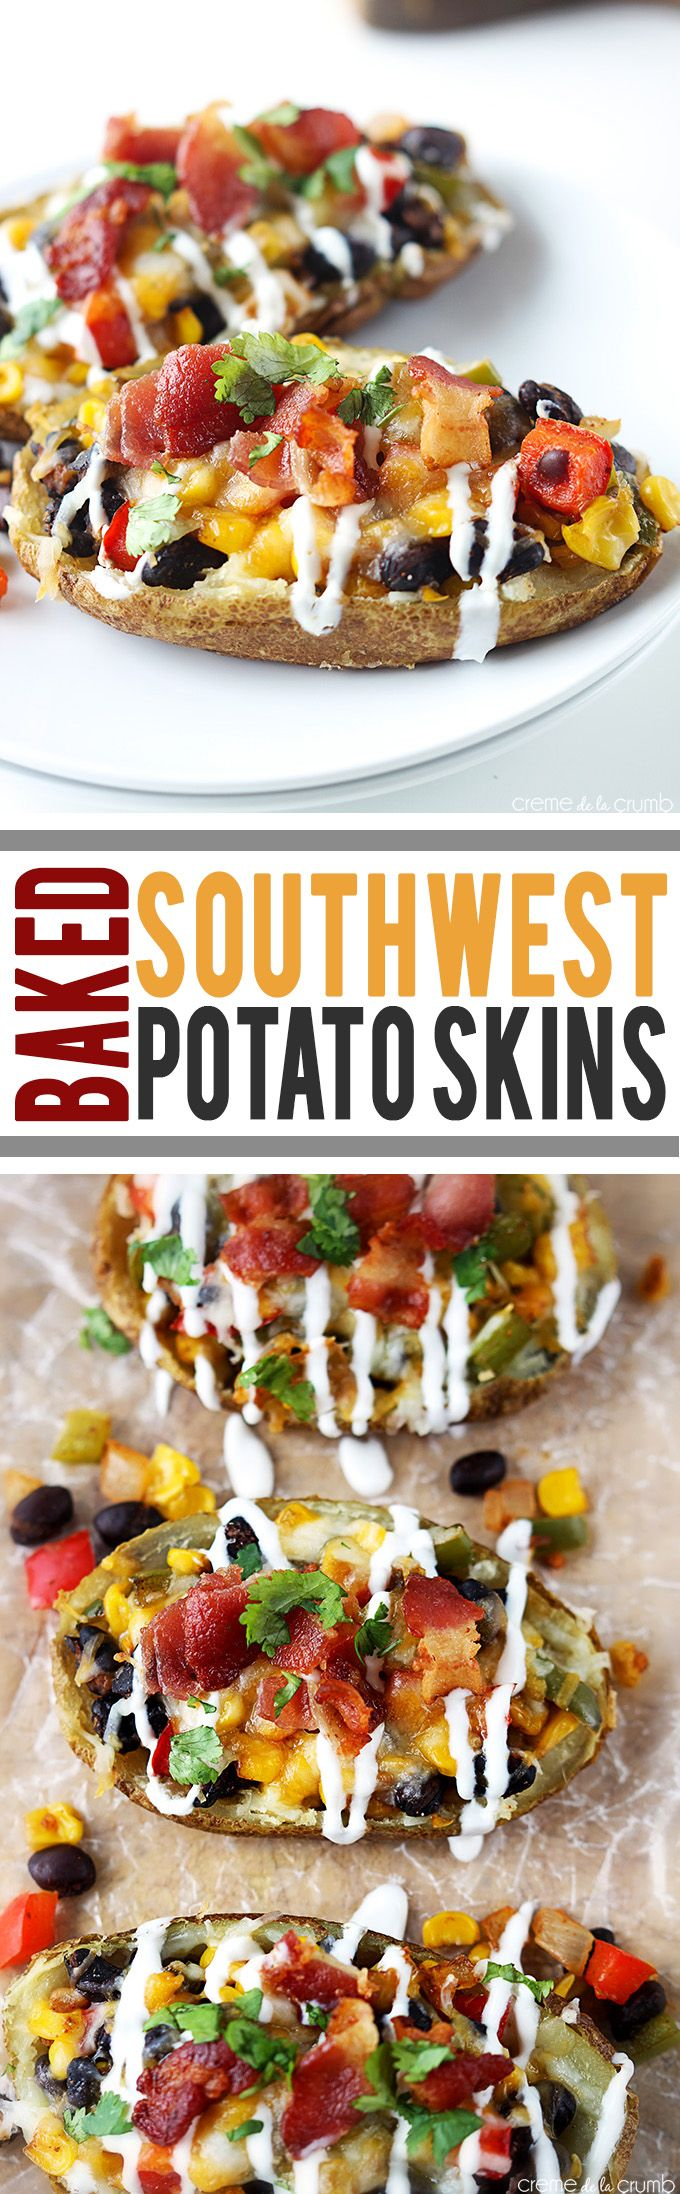 Crispy baked potato skins loaded with these, black beans, corn, bacon, cilantro and topped with sour cream!